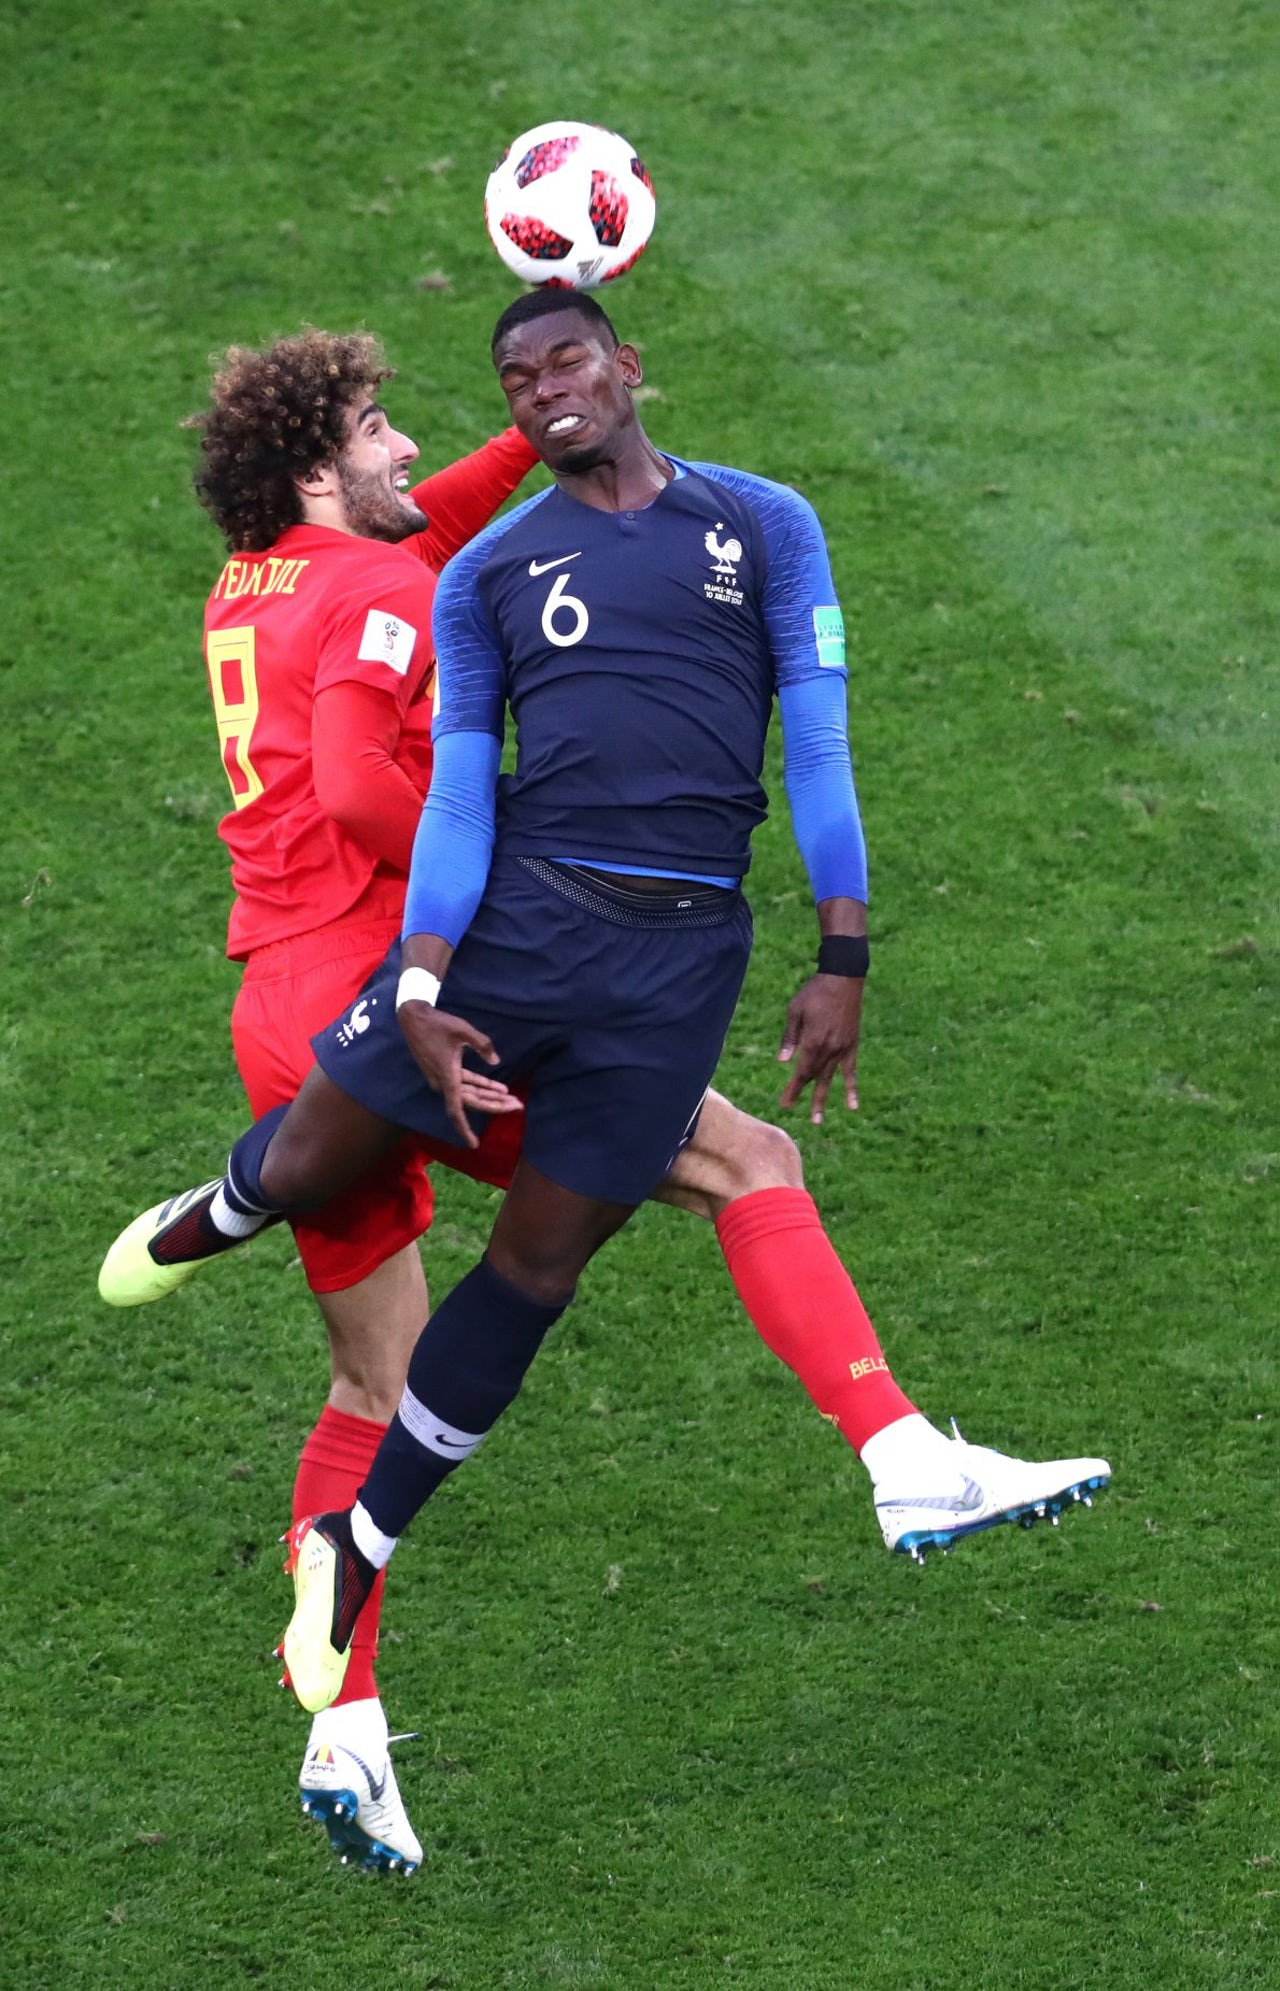 Paul Pogba heads the ball during the France vs. Belgium World Cup Game.